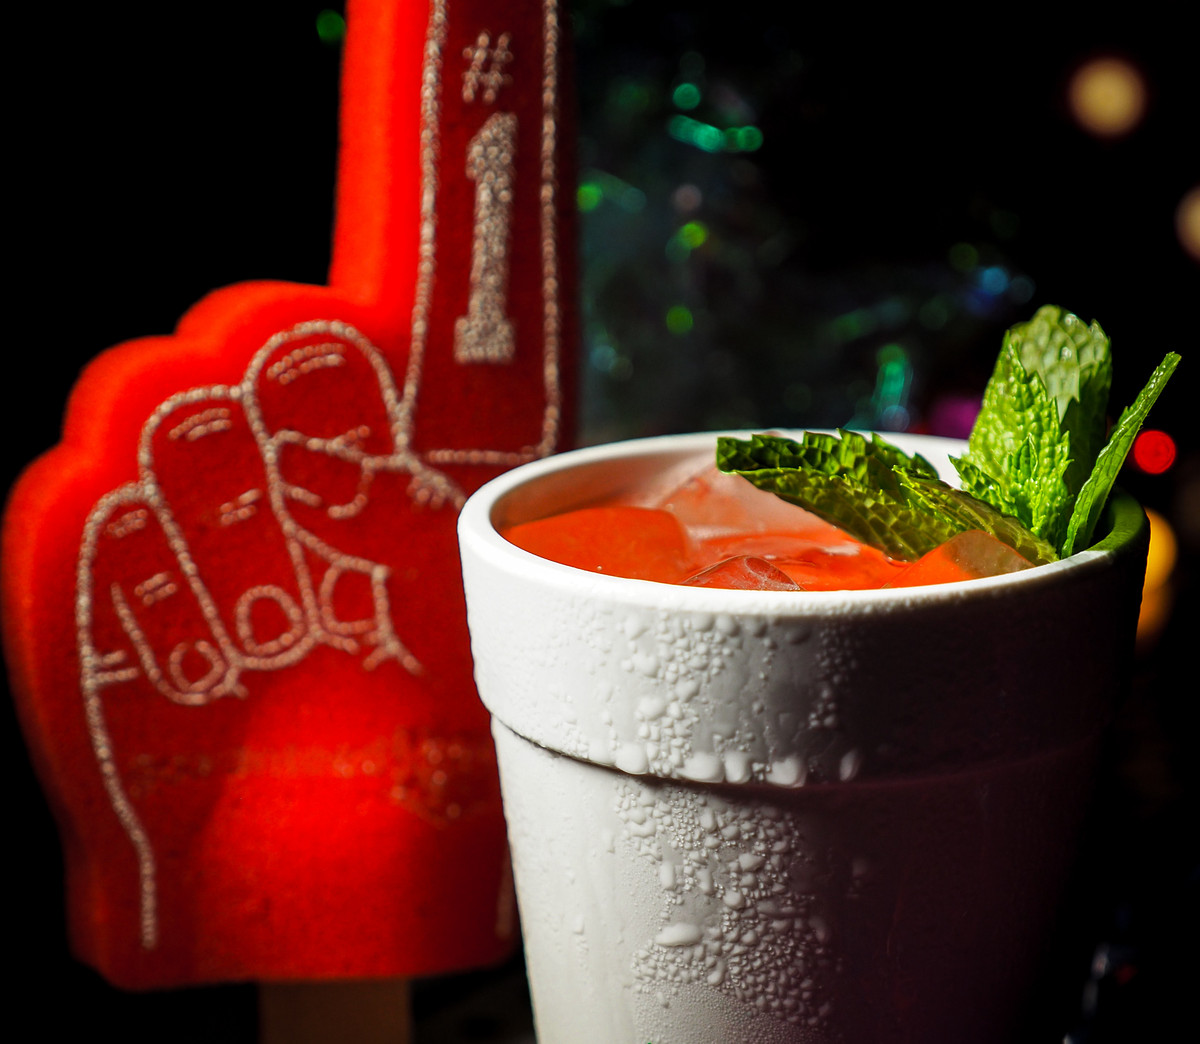 A pink drink garnished with mint in a styrofoam cup, with a giant red foam fan finger on the left.